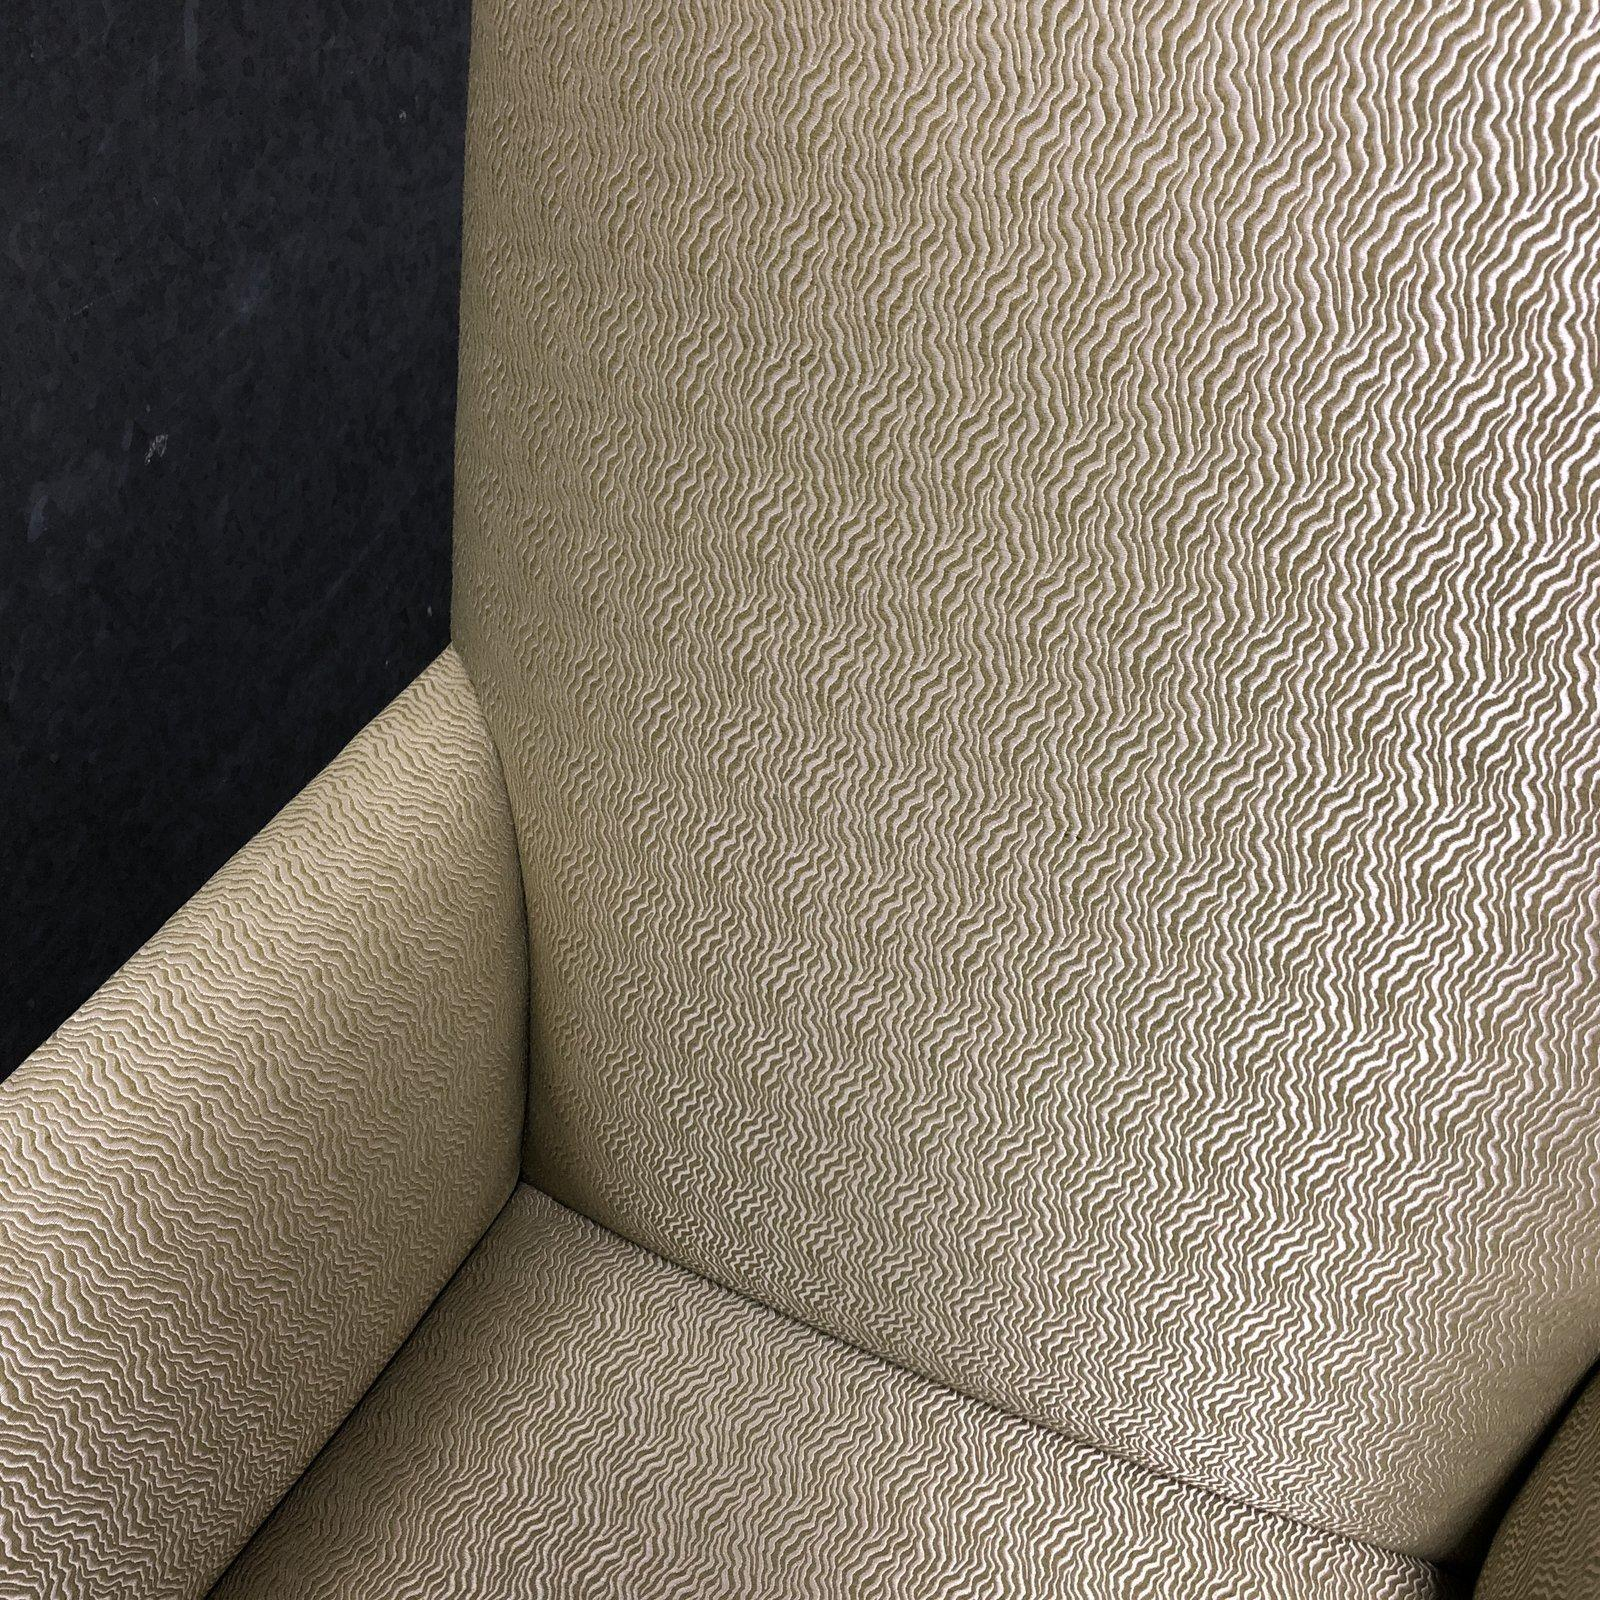 Fabulous Donghia Odeon Club Chair For Sale At 1Stdibs Evergreenethics Interior Chair Design Evergreenethicsorg